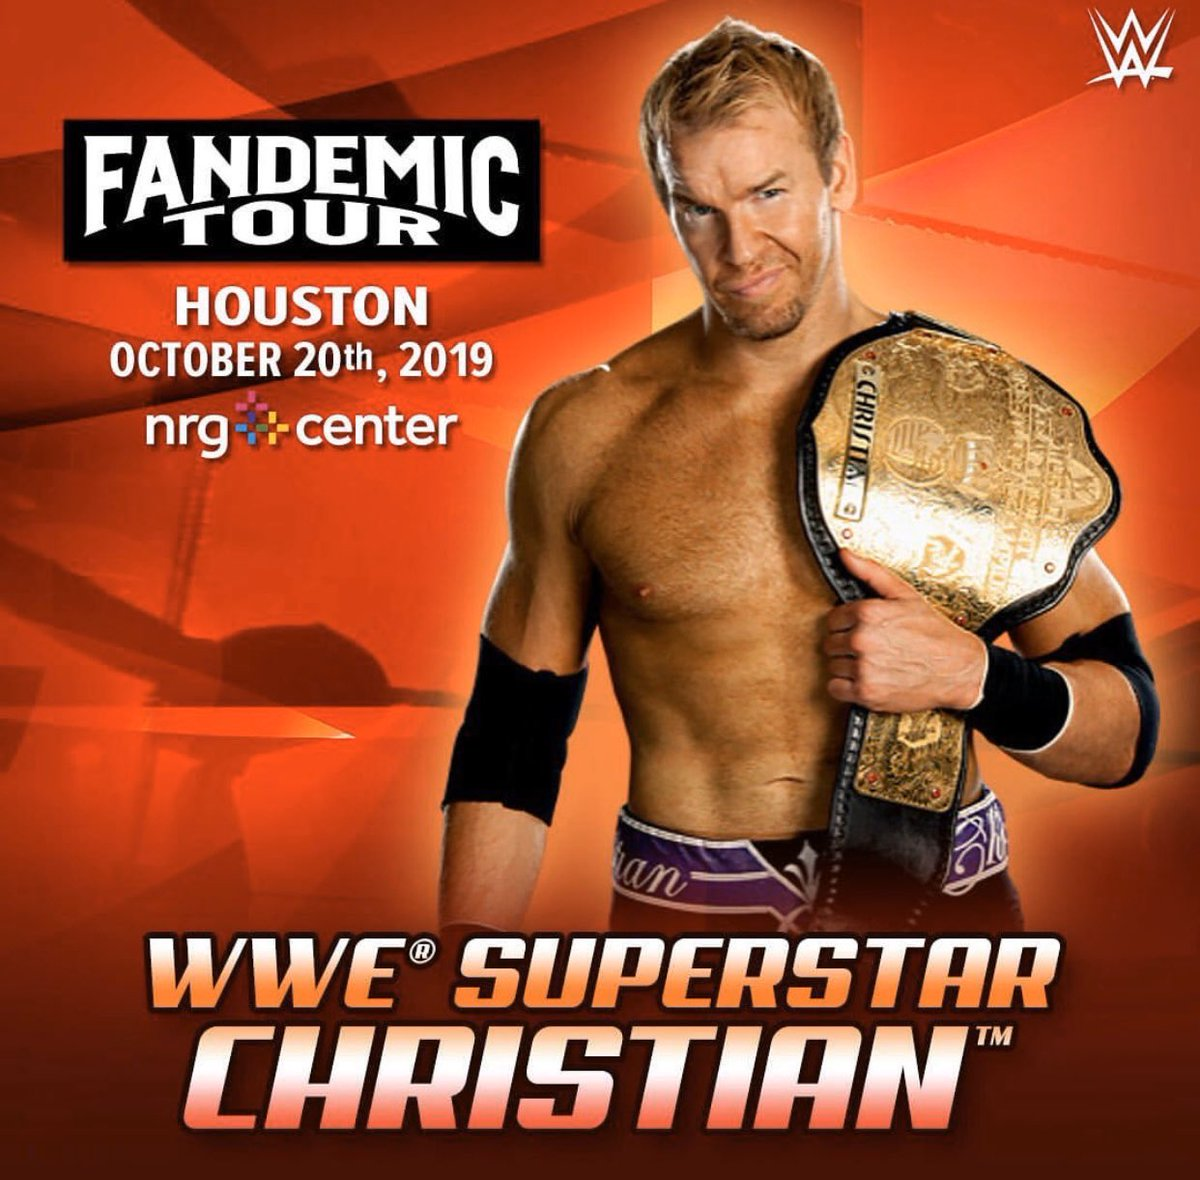 Houston Peeps.. This Sunday, October 20th I'll be at @FandemicTour.... signing, photo ops and deep conversations aplenty    https://t.co/4ym4Ofv2ub https://t.co/nIQMmn8bEh